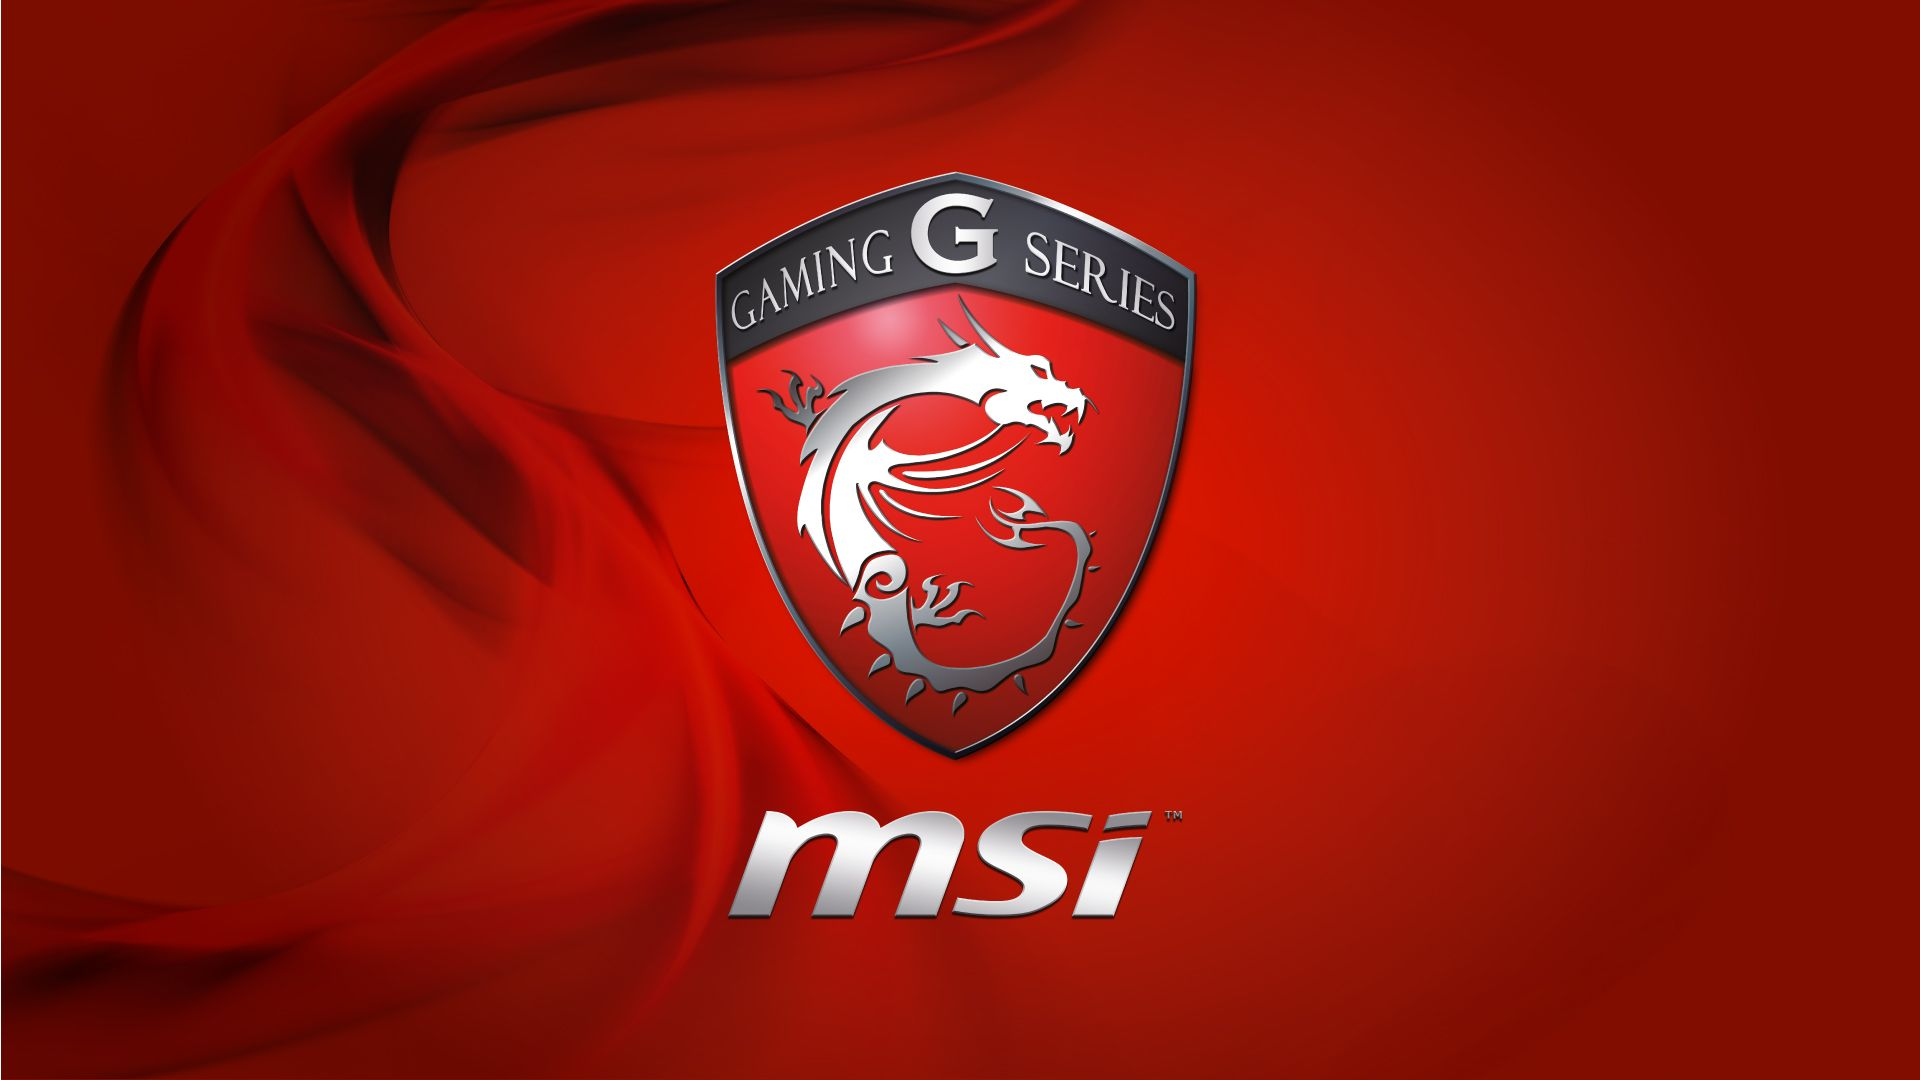 Msi wallpapers and background - Does Anyone Have This Msi Wallpaper Ati Wallpaper 1080p